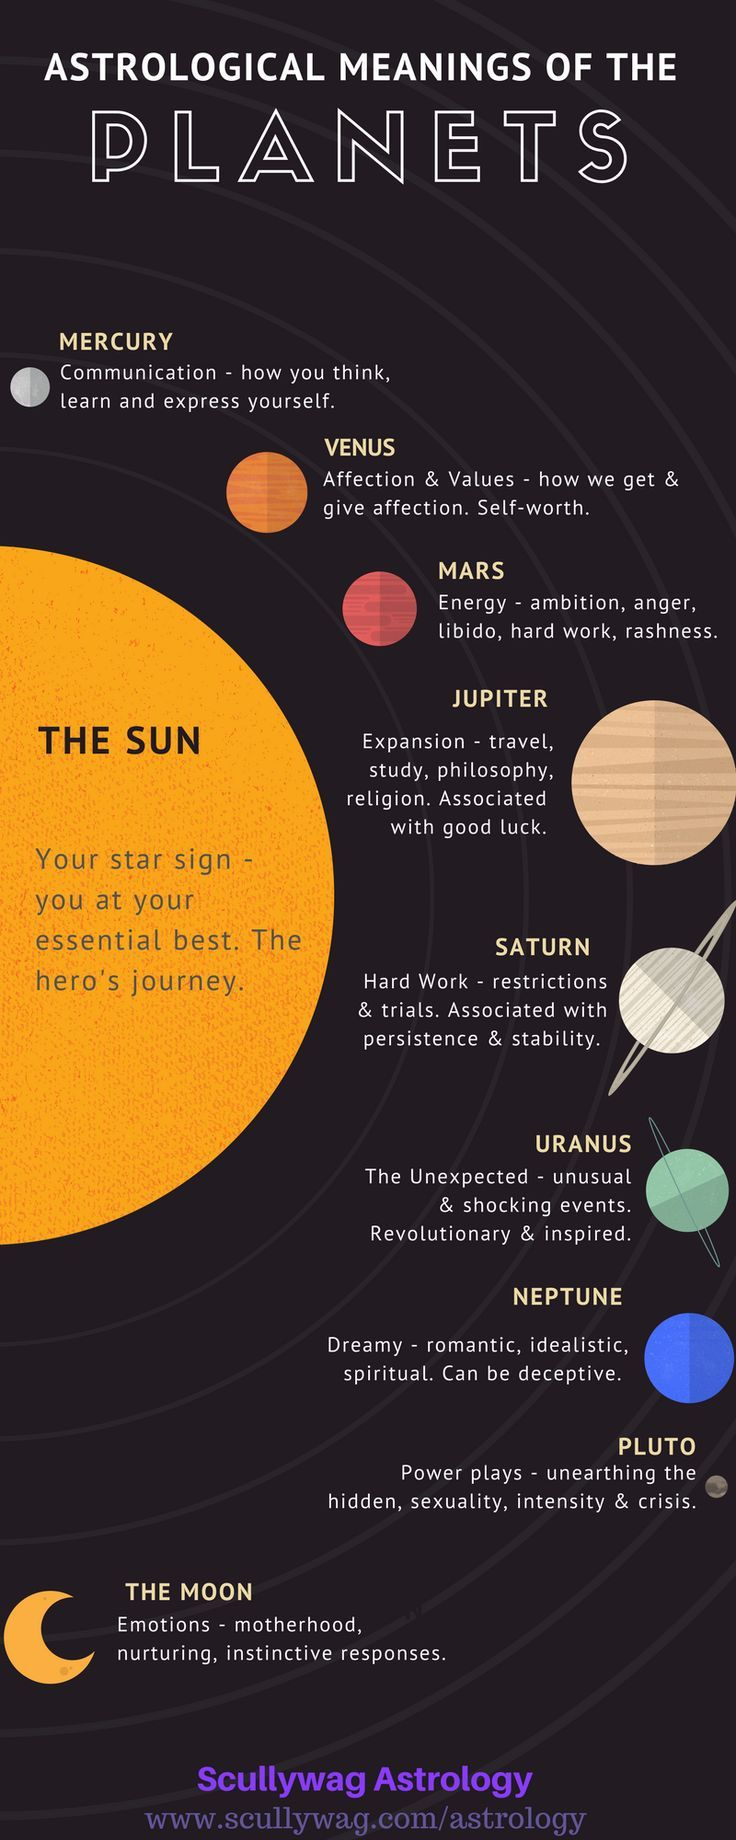 what does the planet saturn represent in astrology